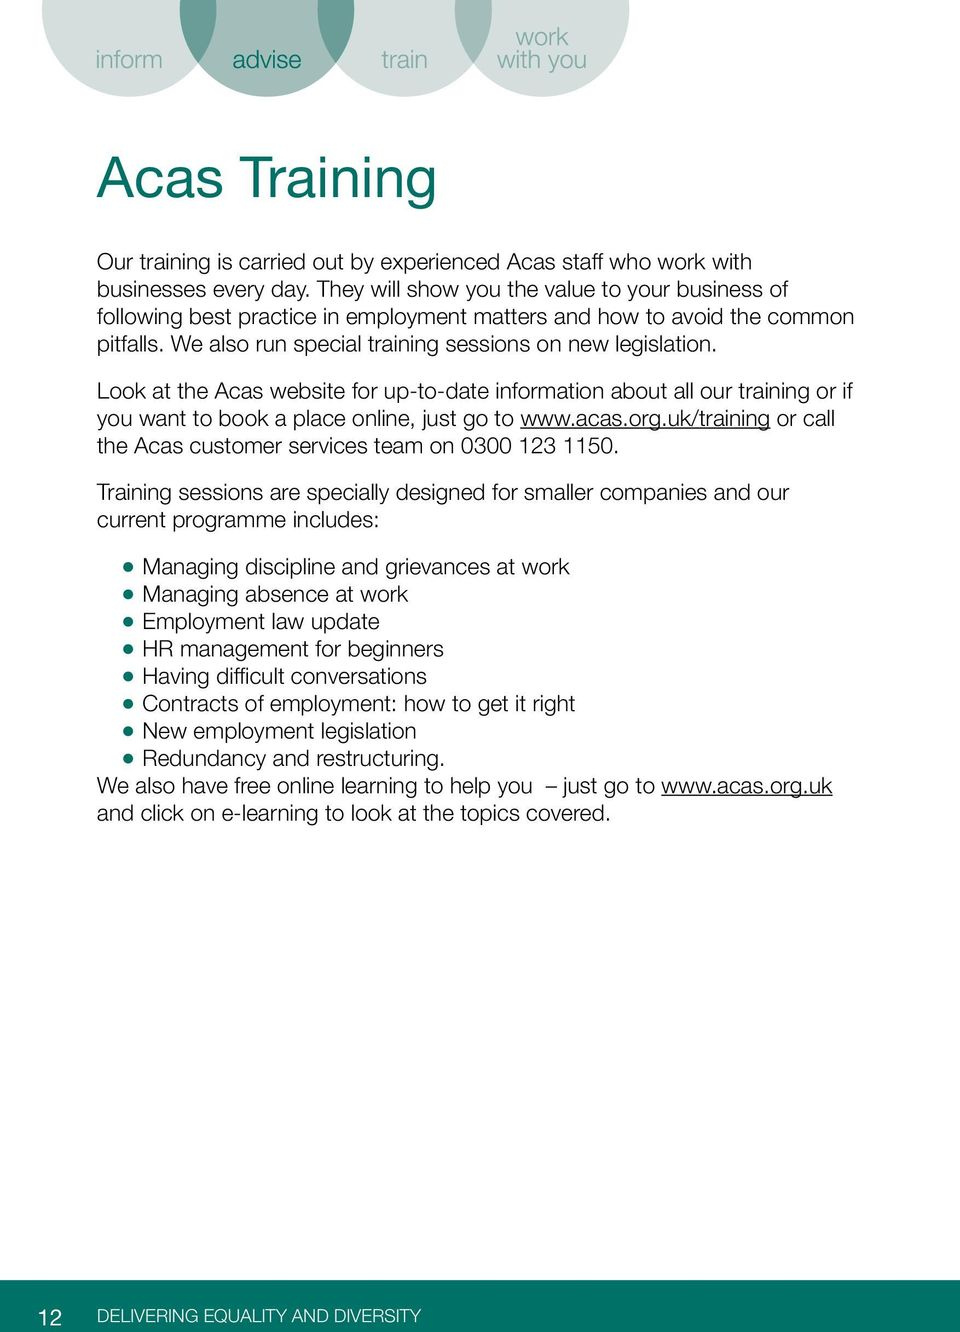 Look at the Acas website for up-to-date information about all our training or if you want to book a place online, just go to www.acas.org.